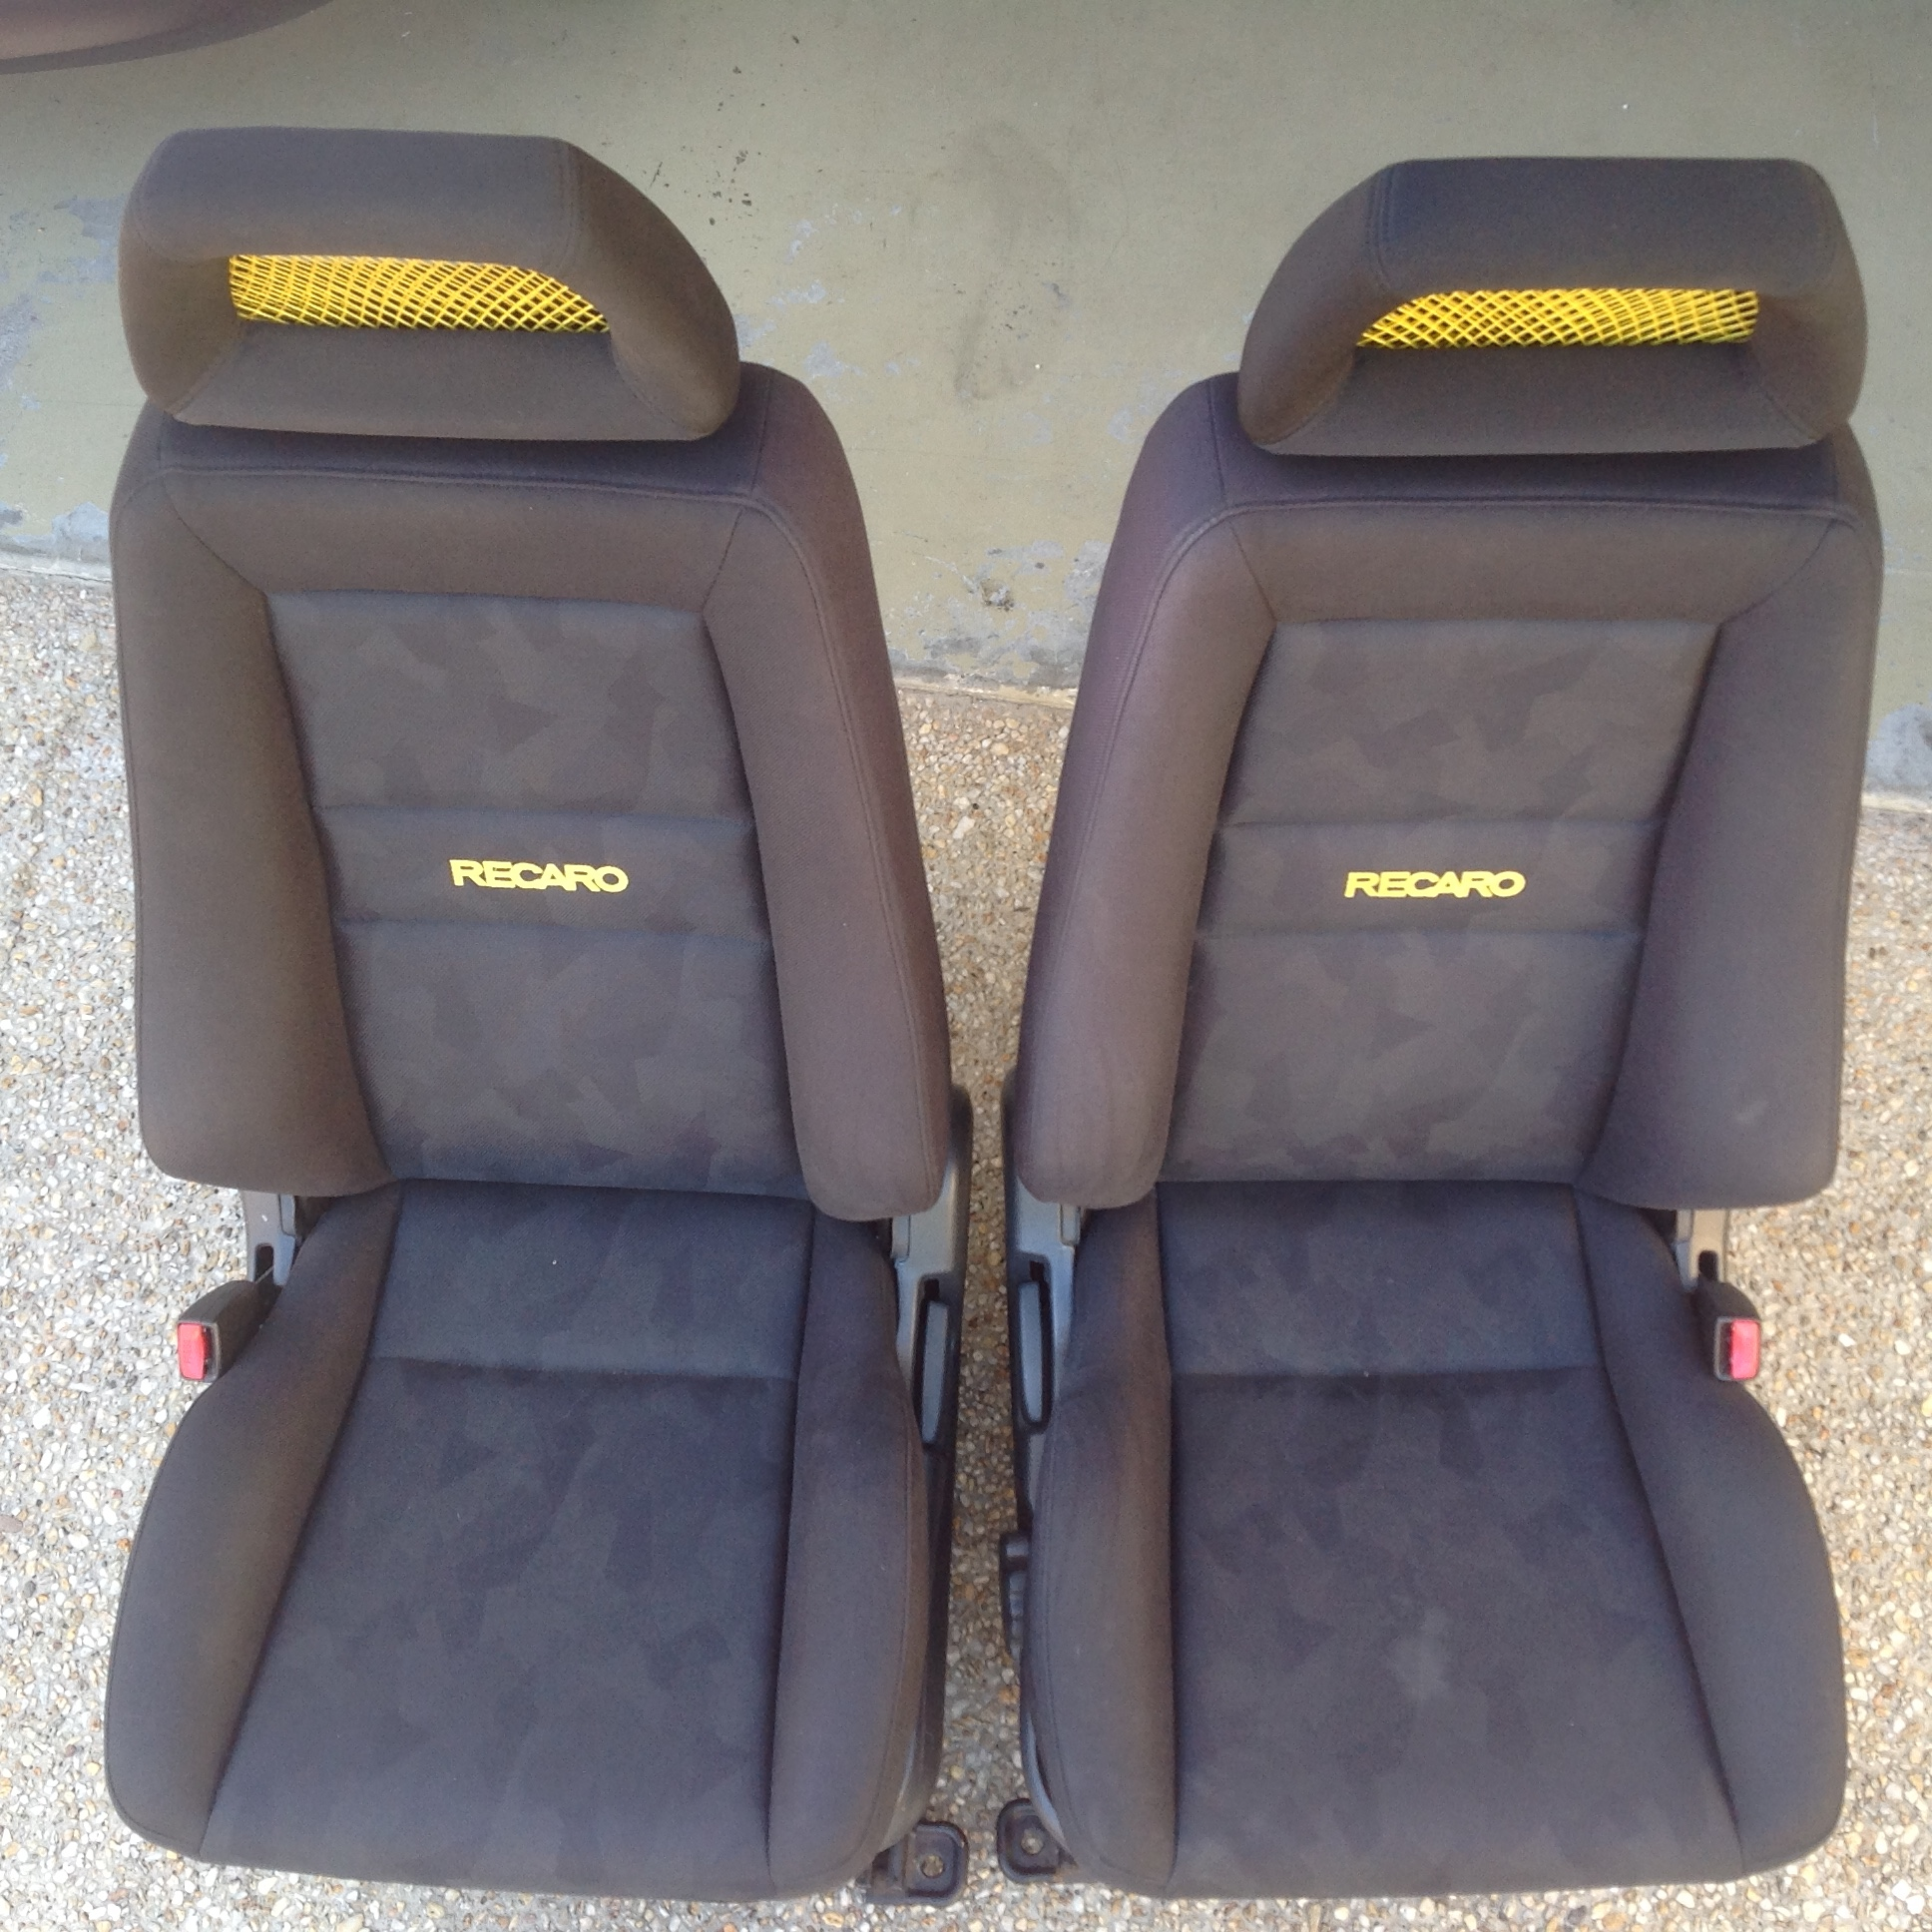 recaro bucket seats car parts qld gold coast 2921692. Black Bedroom Furniture Sets. Home Design Ideas